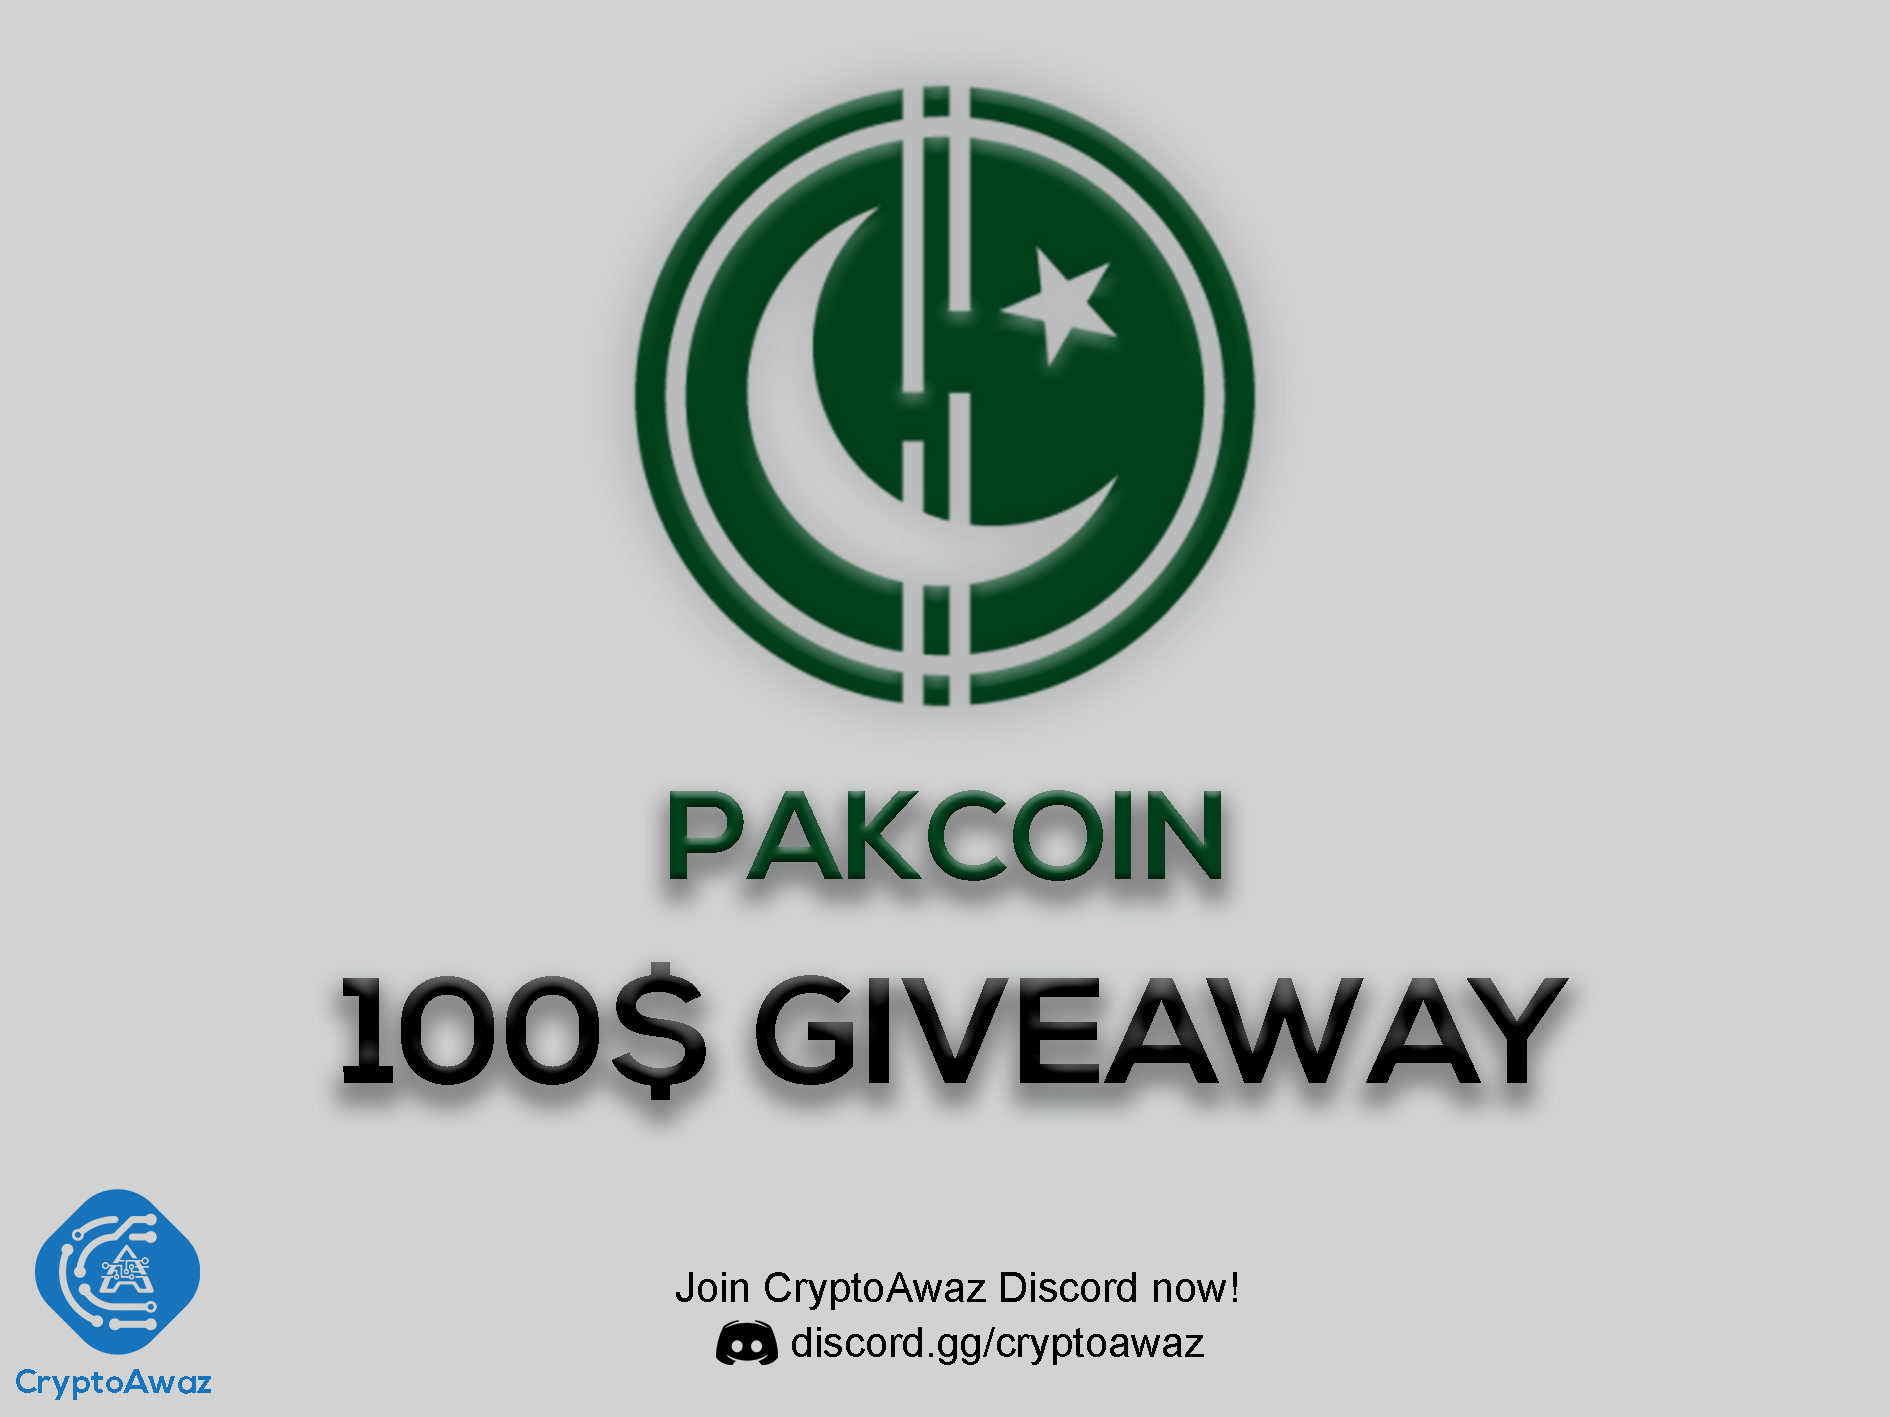 $100 PAKCOIN Giveaway